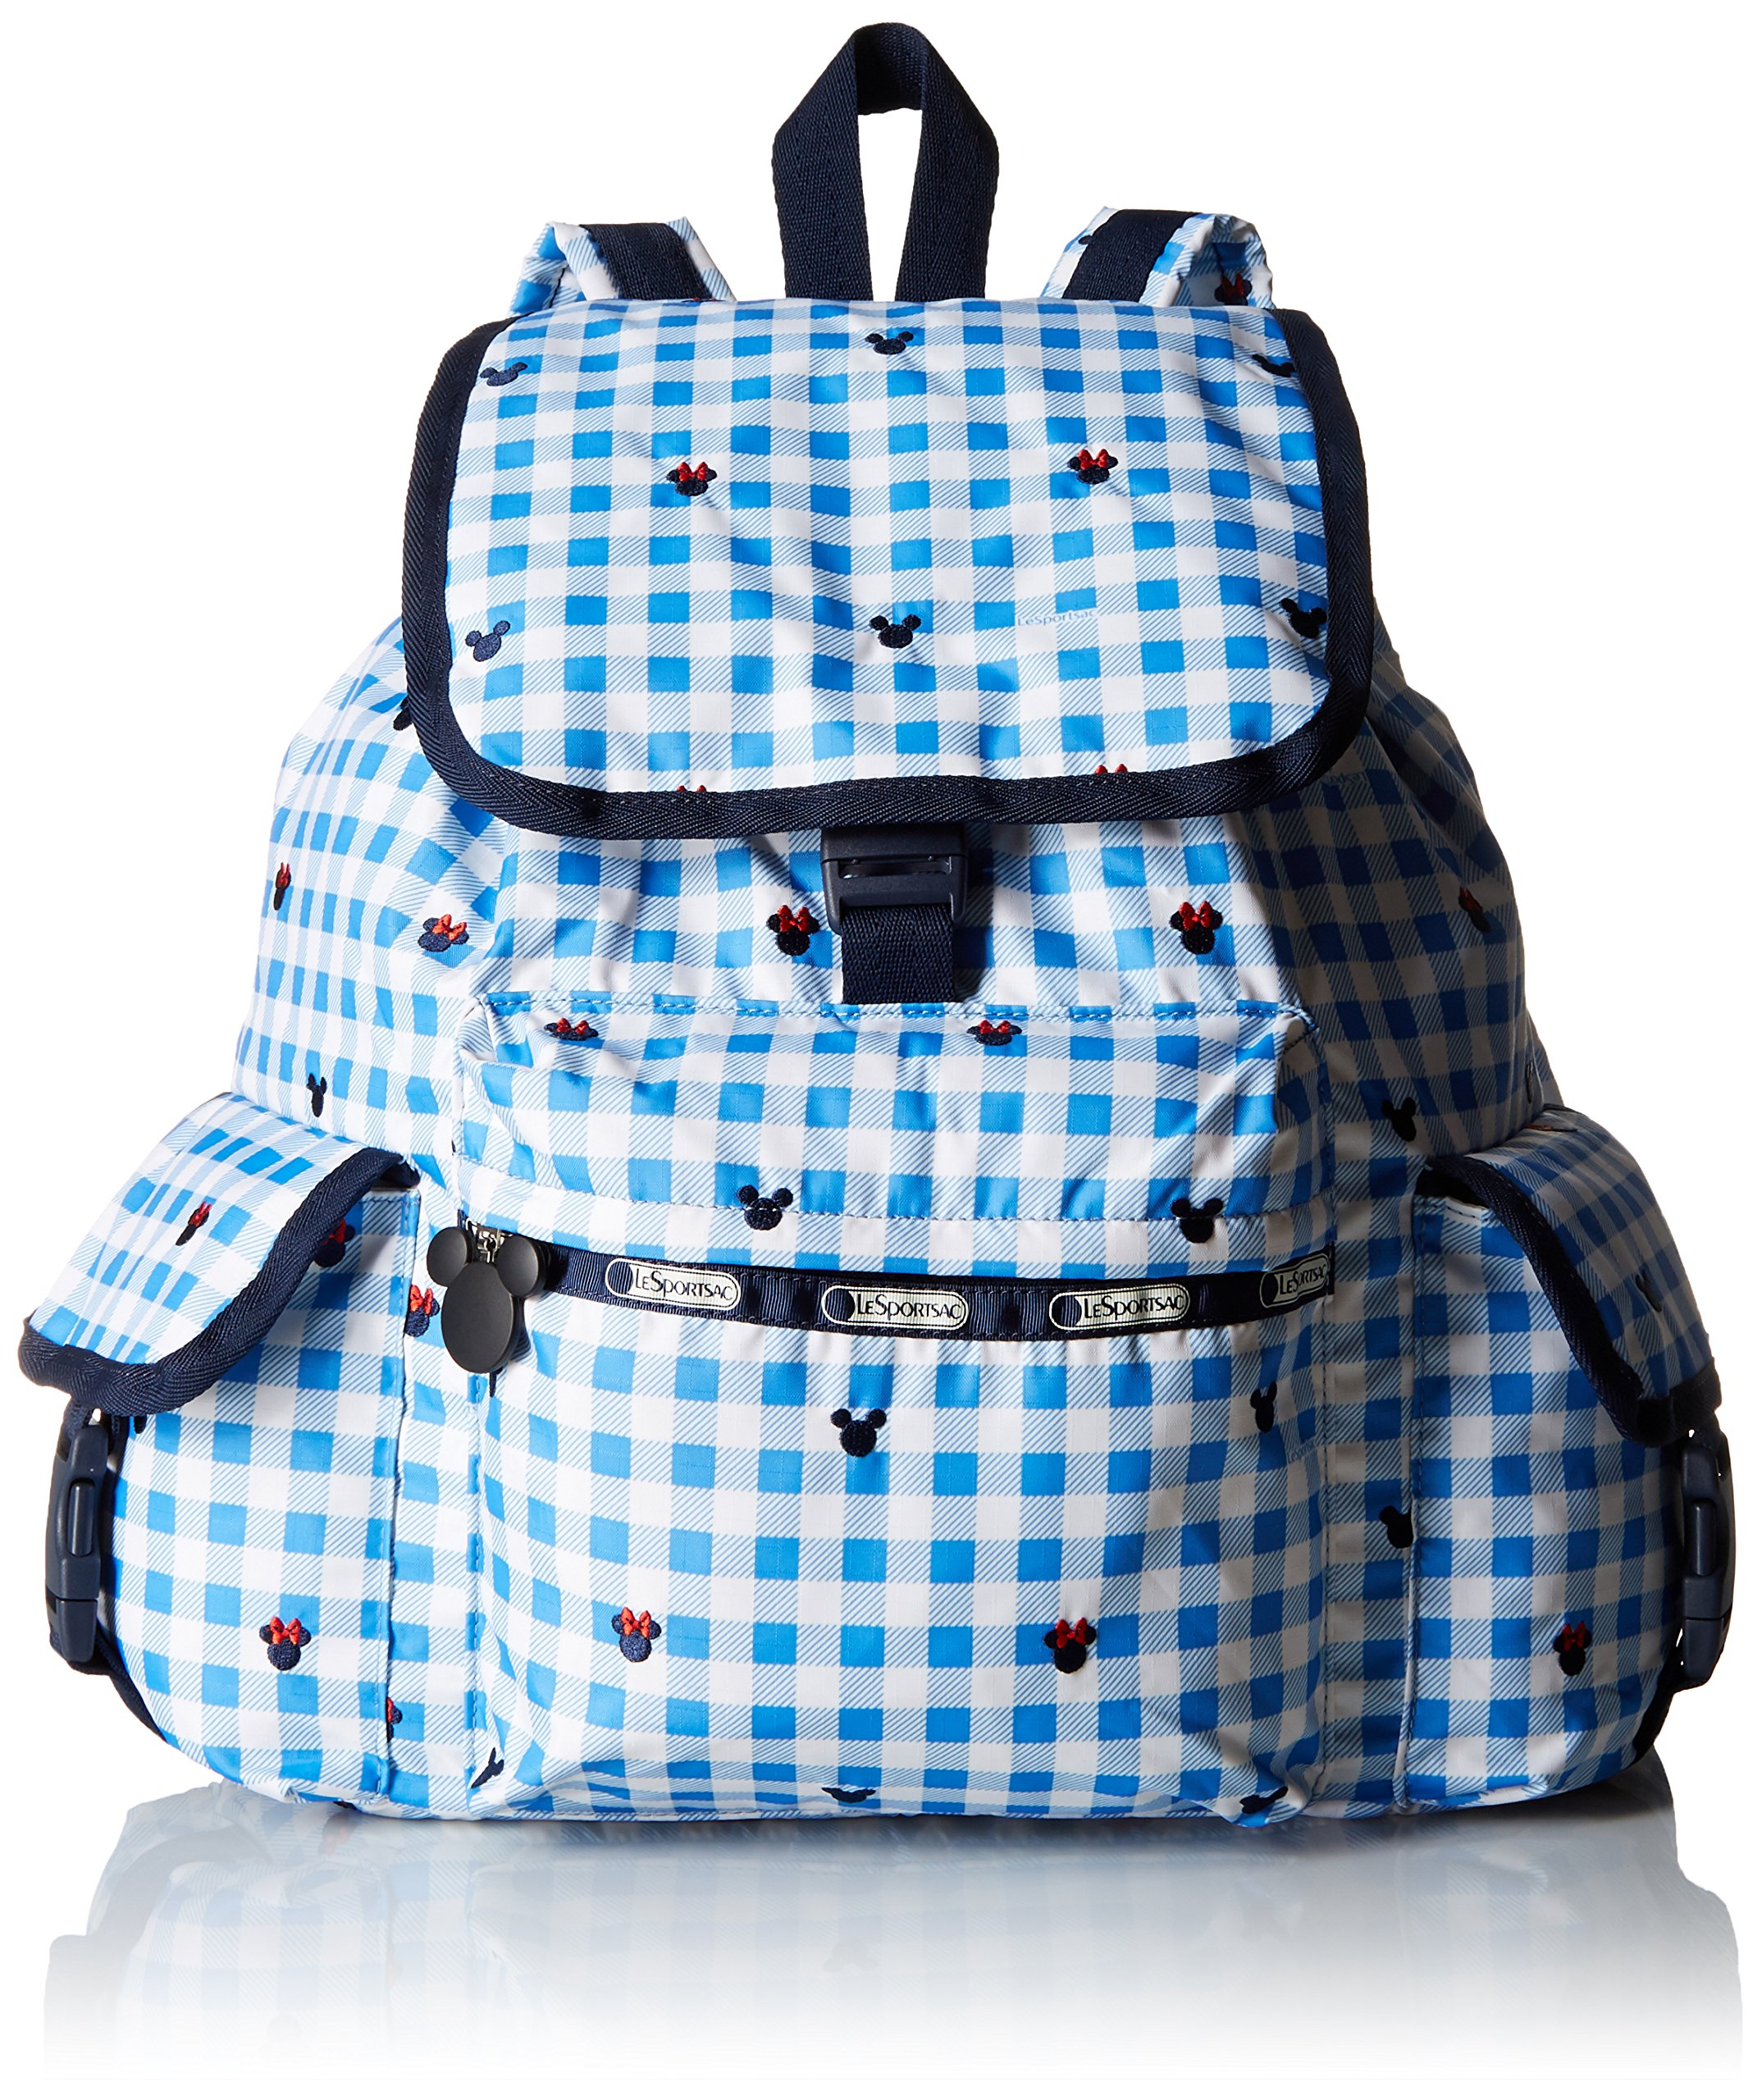 LeSportsac Voyager Back pack, Checks And Bows, One Size